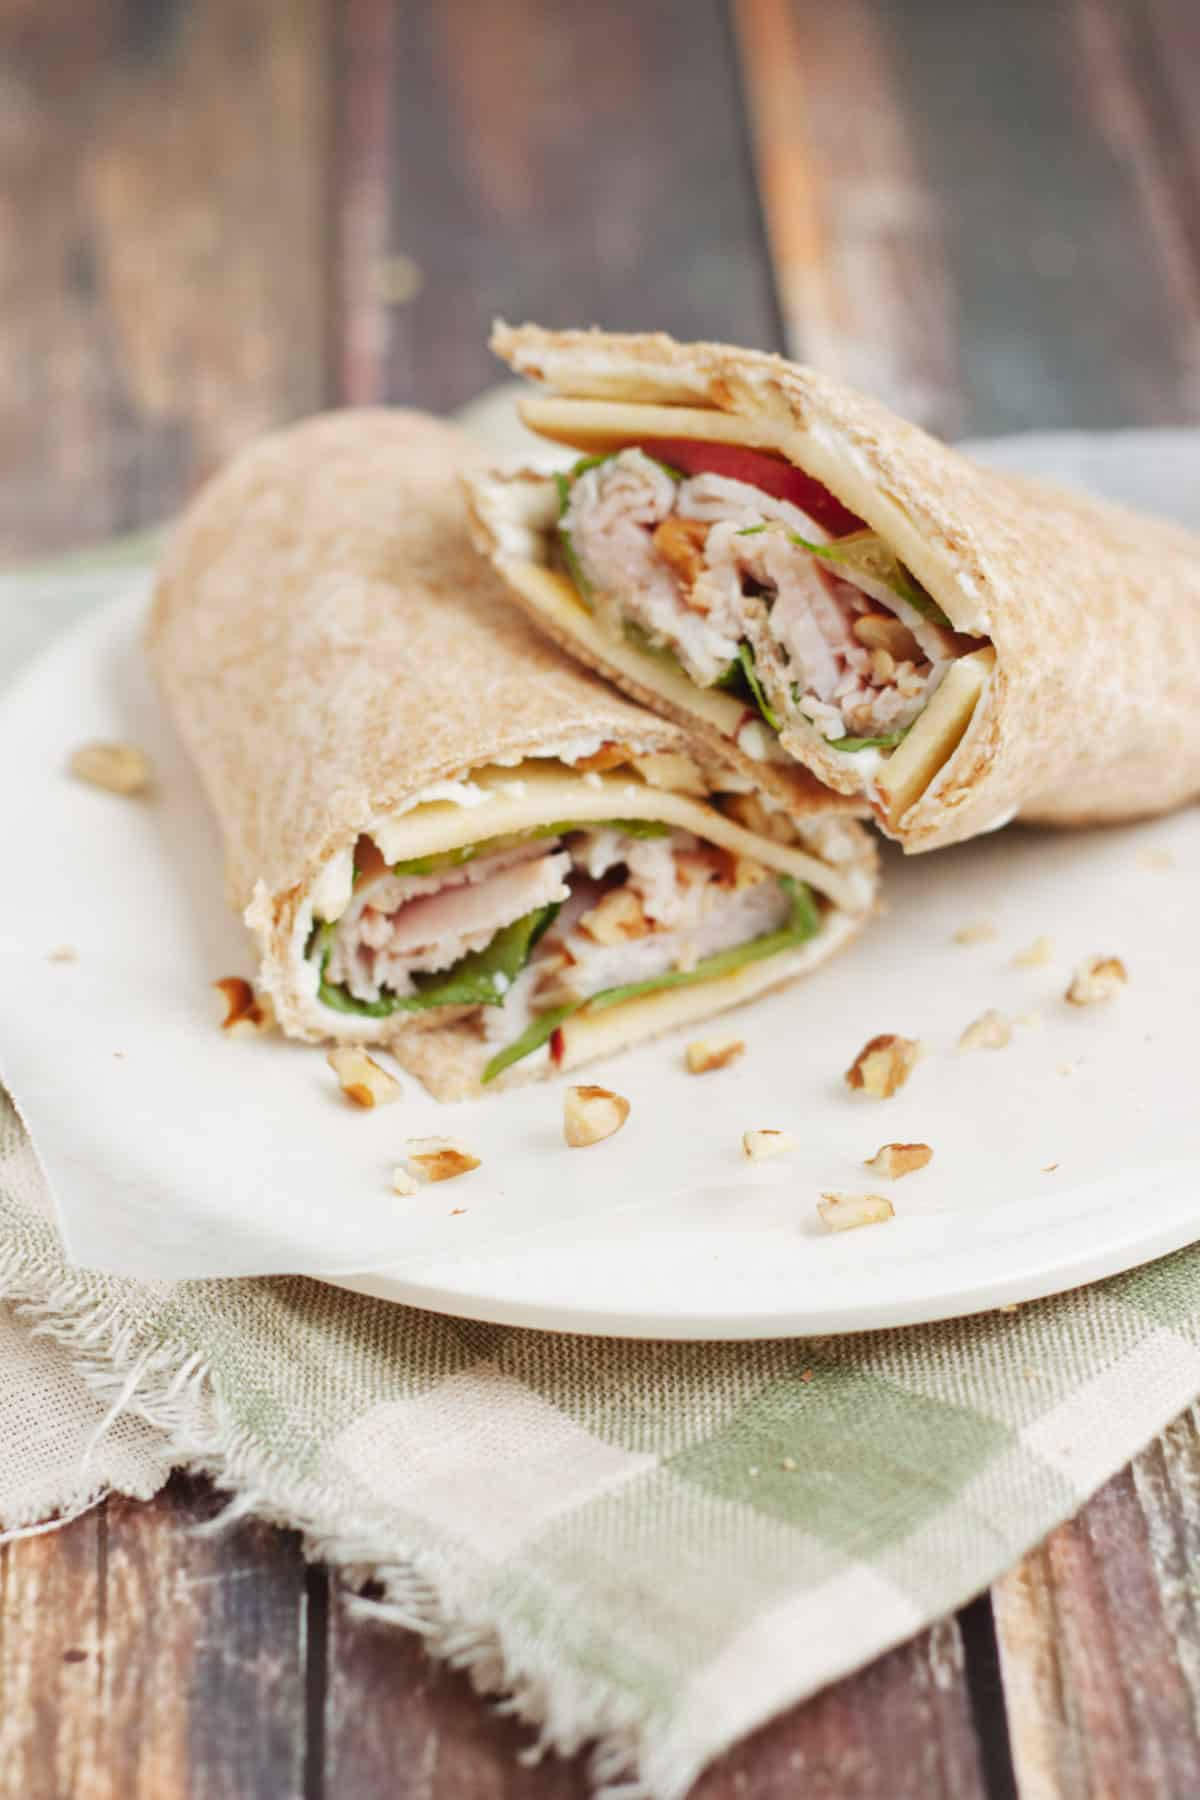 Deli turkey, lettuce and sliced apples wrapped in whole wheat tortilla with pecans scattered on plate on top of green and white check fabric.